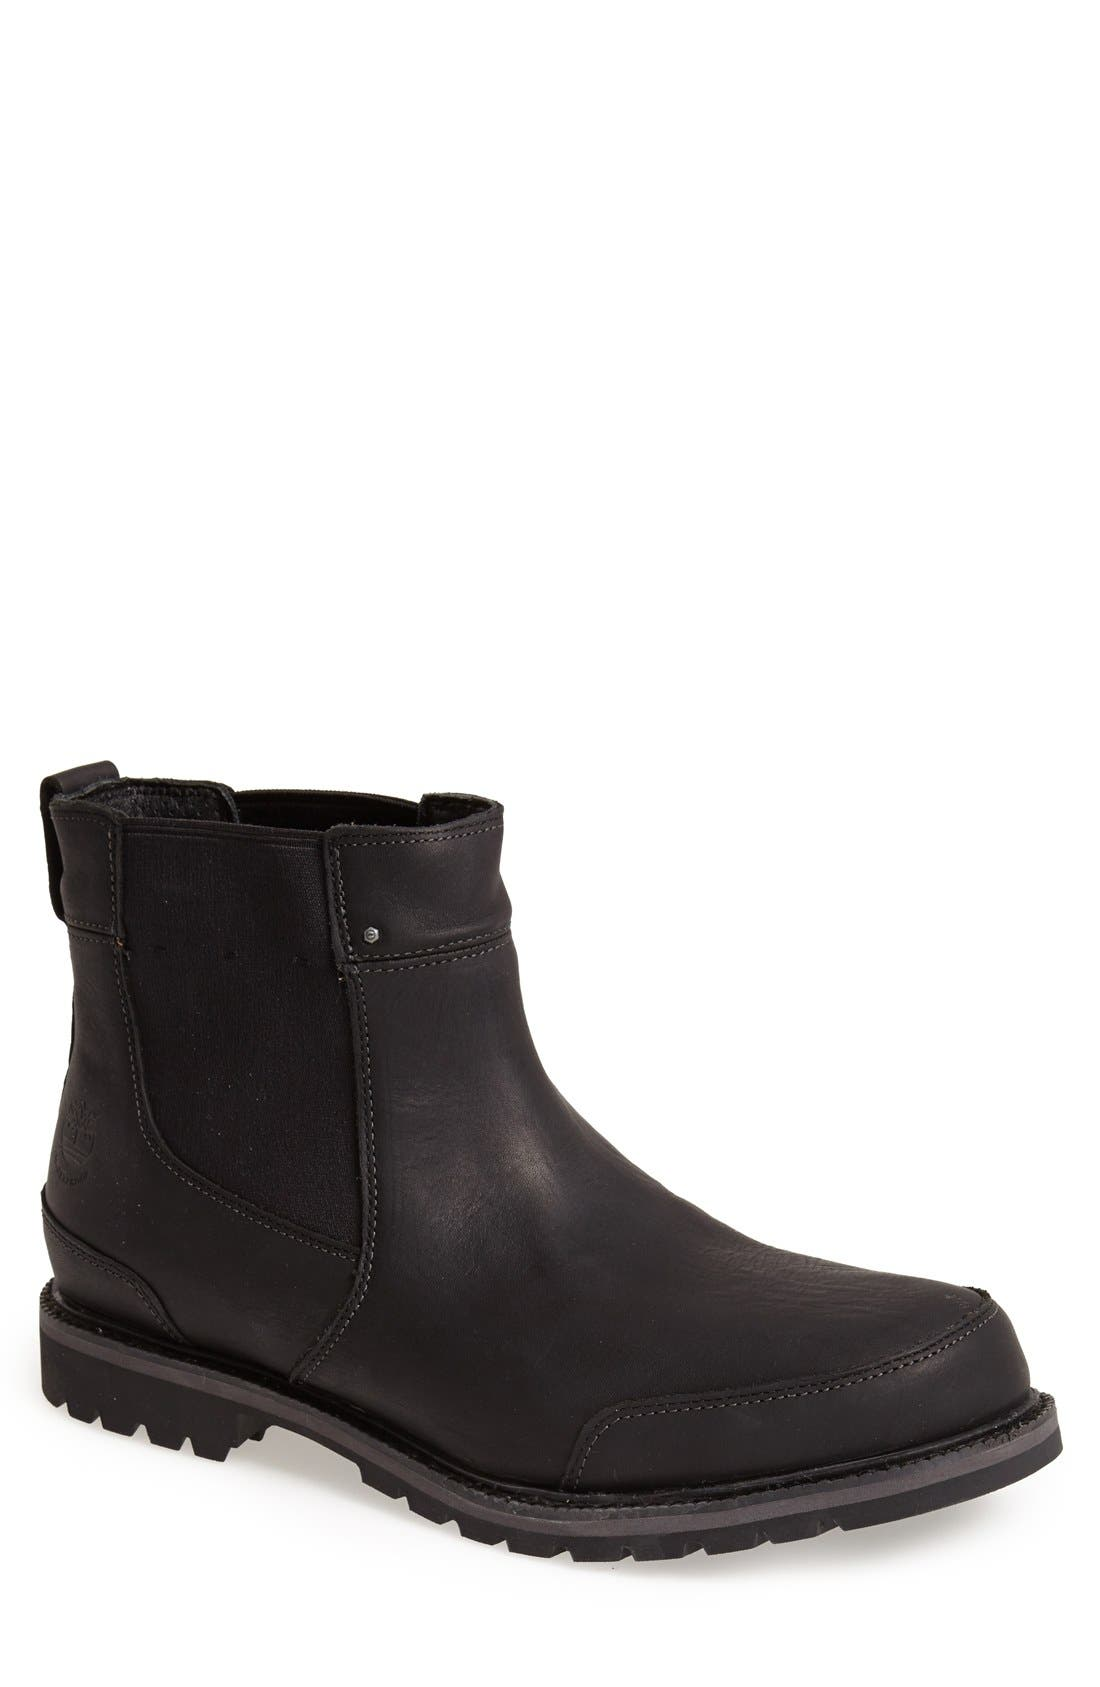 Alternate Image 1 Selected - Timberland Earthkeepers® 'Chestnut' Chelsea Boot (Men)